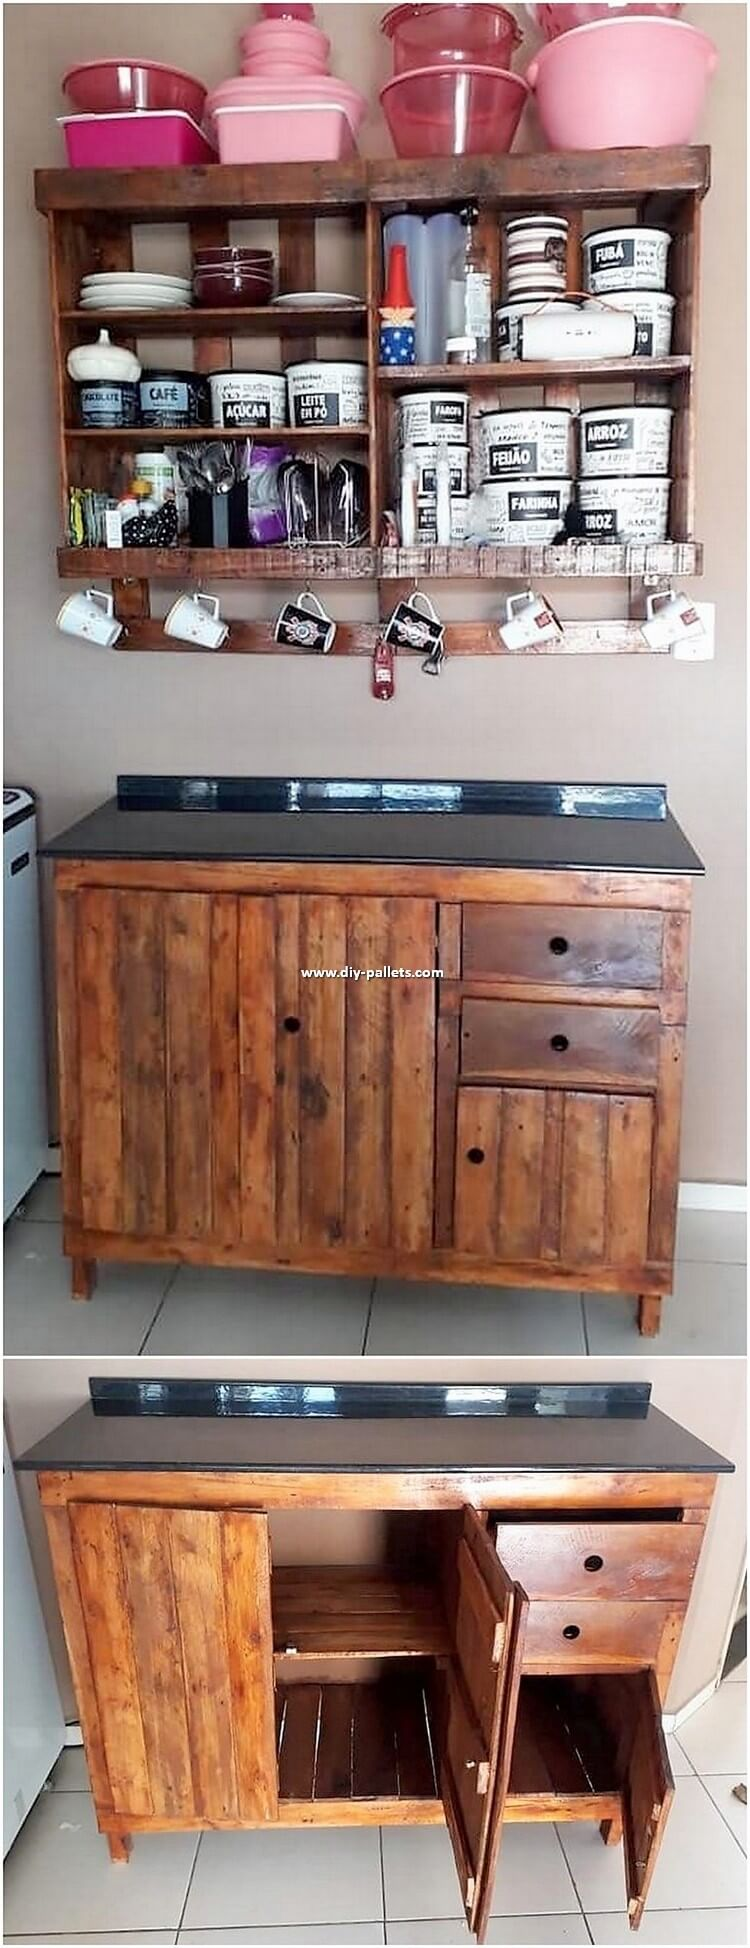 Pallet Cup Holder and Cabinet